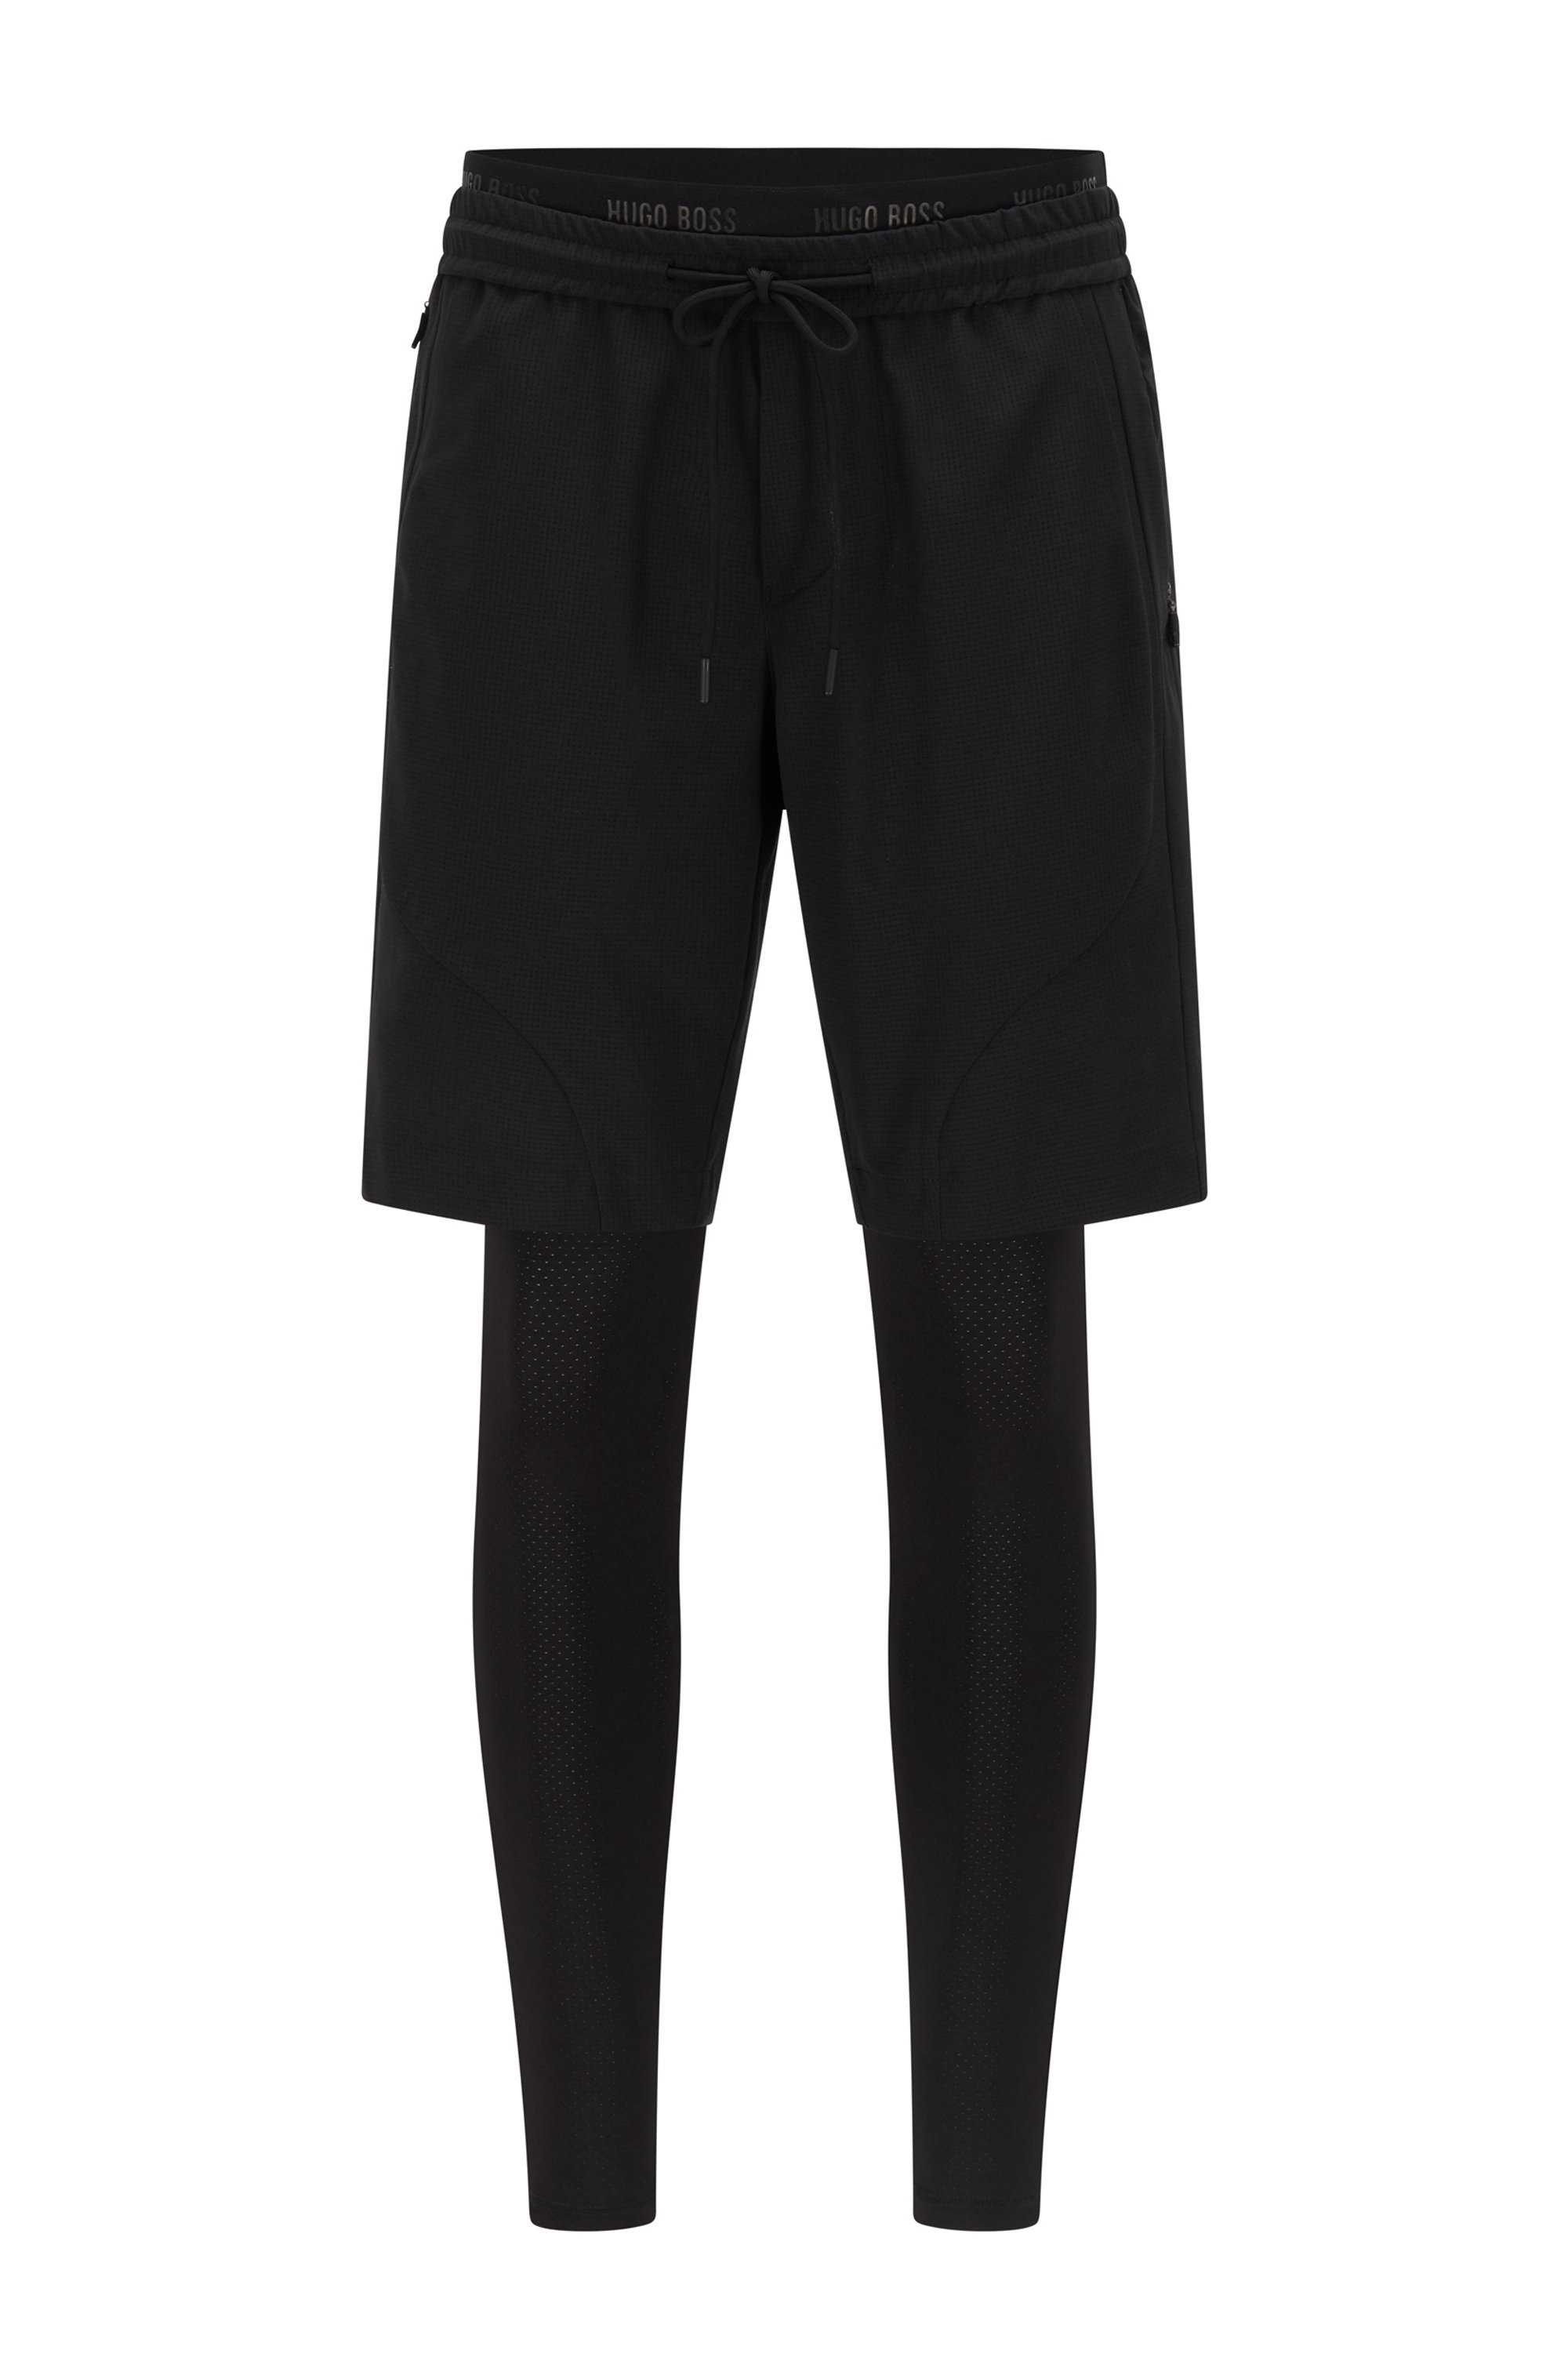 Hybrid running leggings and shorts, Black